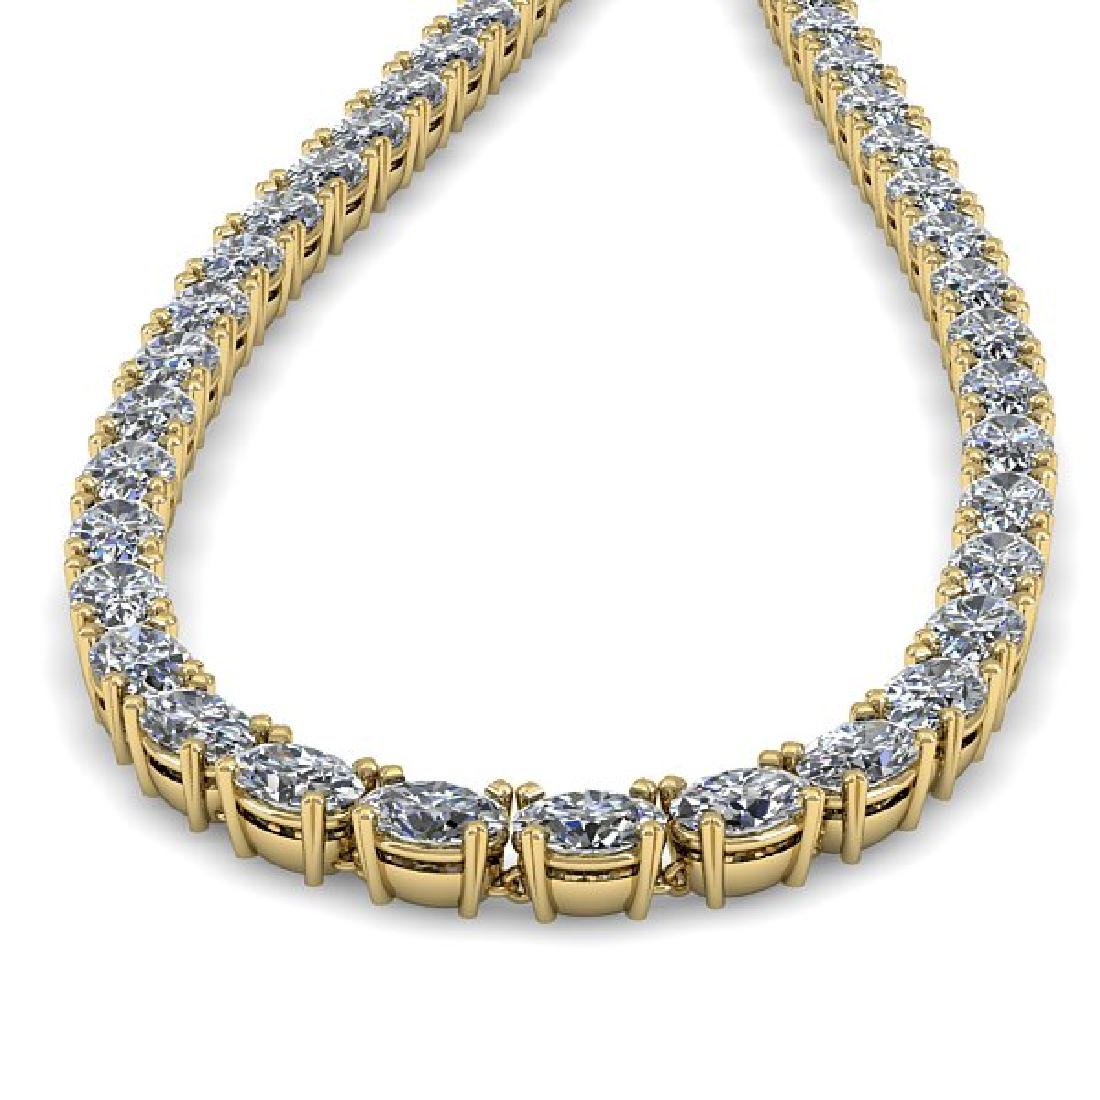 26 CTW Oval Cut Certified SI Diamond Necklace 18K - 2